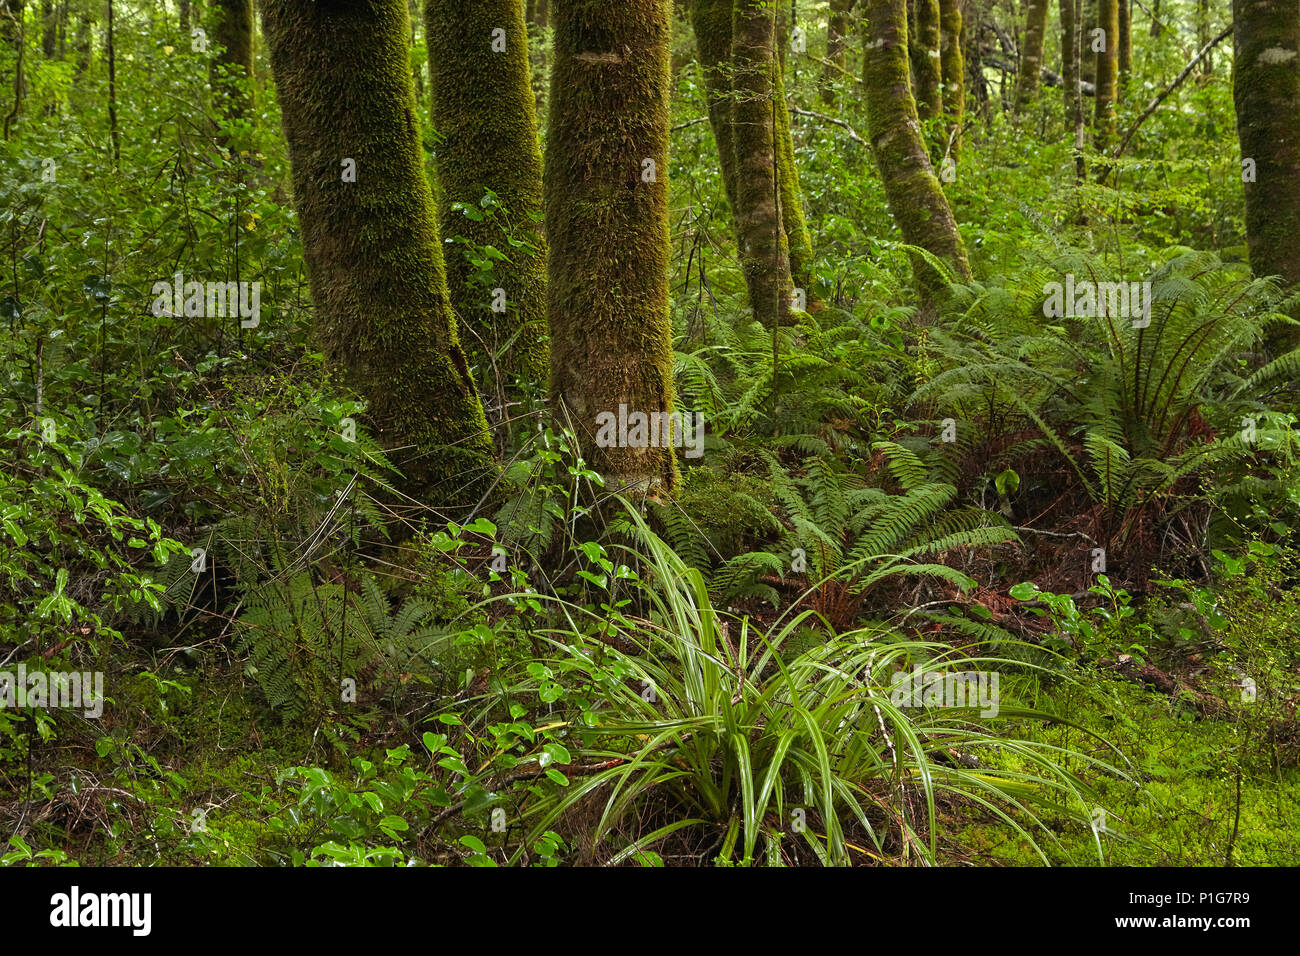 Native forest beside Blue Pools Track, Mount Aspiring National Park, Haast Pass, near Makarora, Otago, South Island, New Zealand - Stock Image